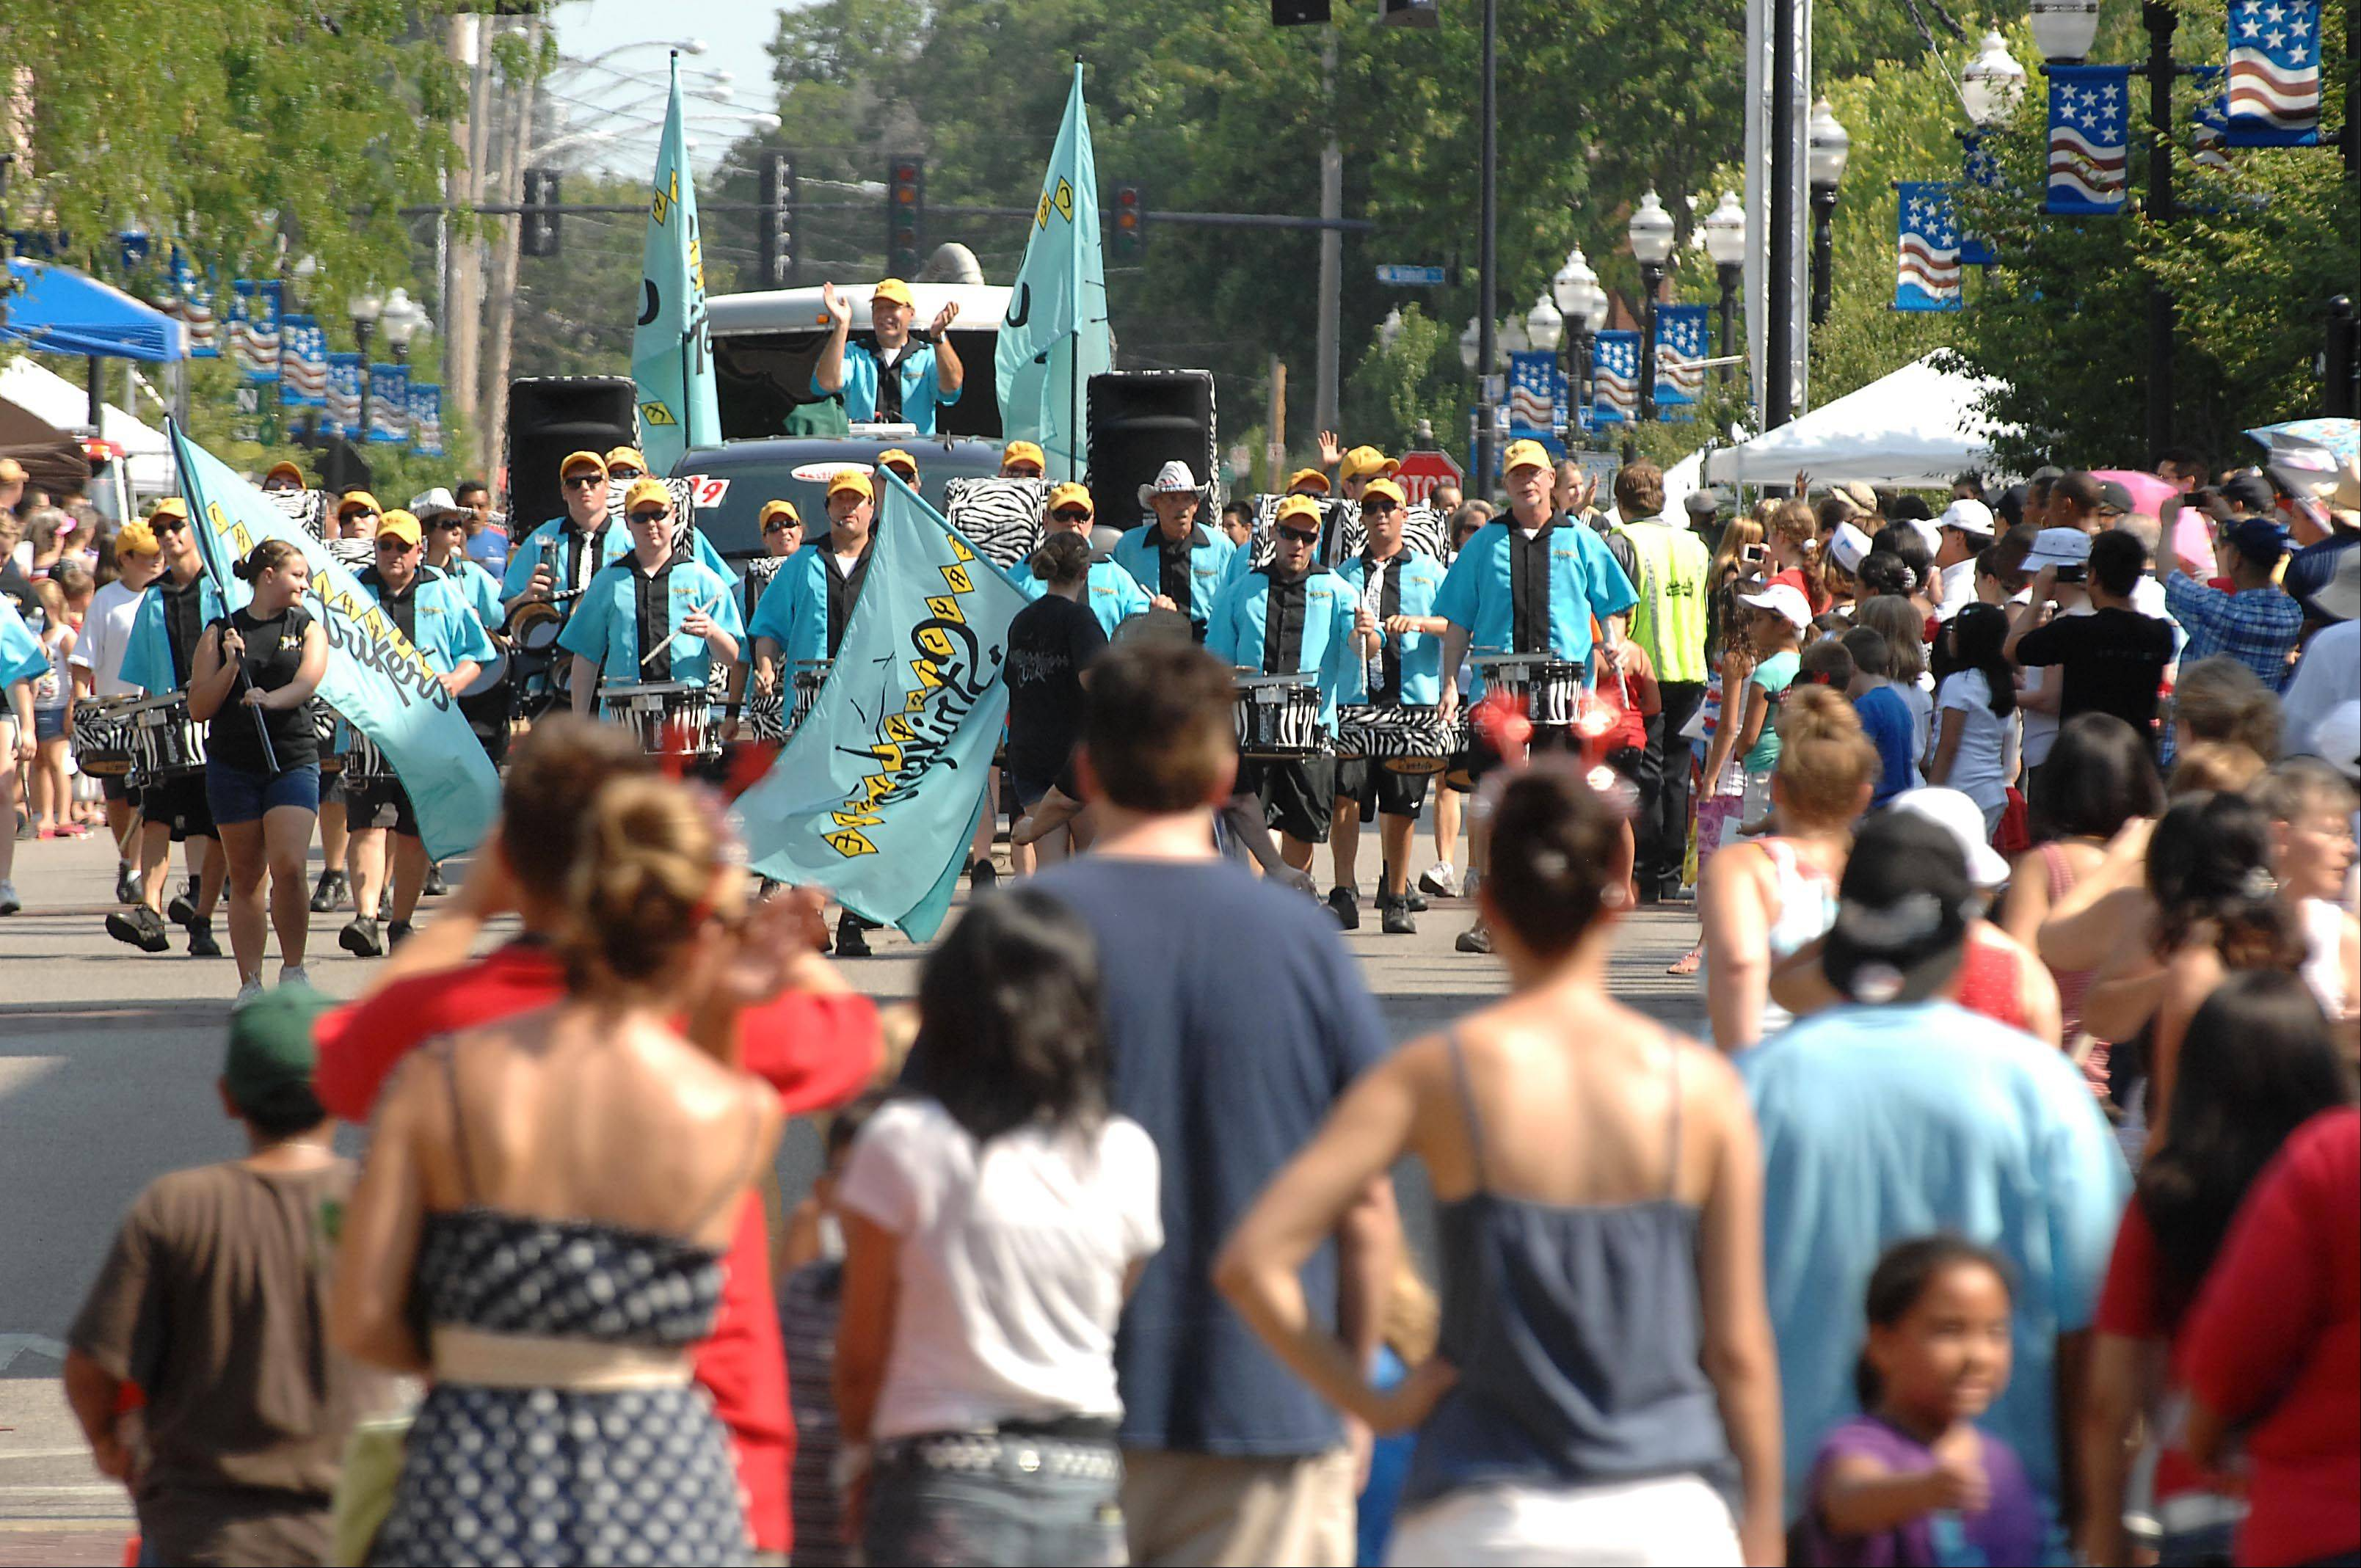 The Crystal Lake Strikers Drumline marching percussion unit performs Wednesday at Elgin Fourth of July parade.